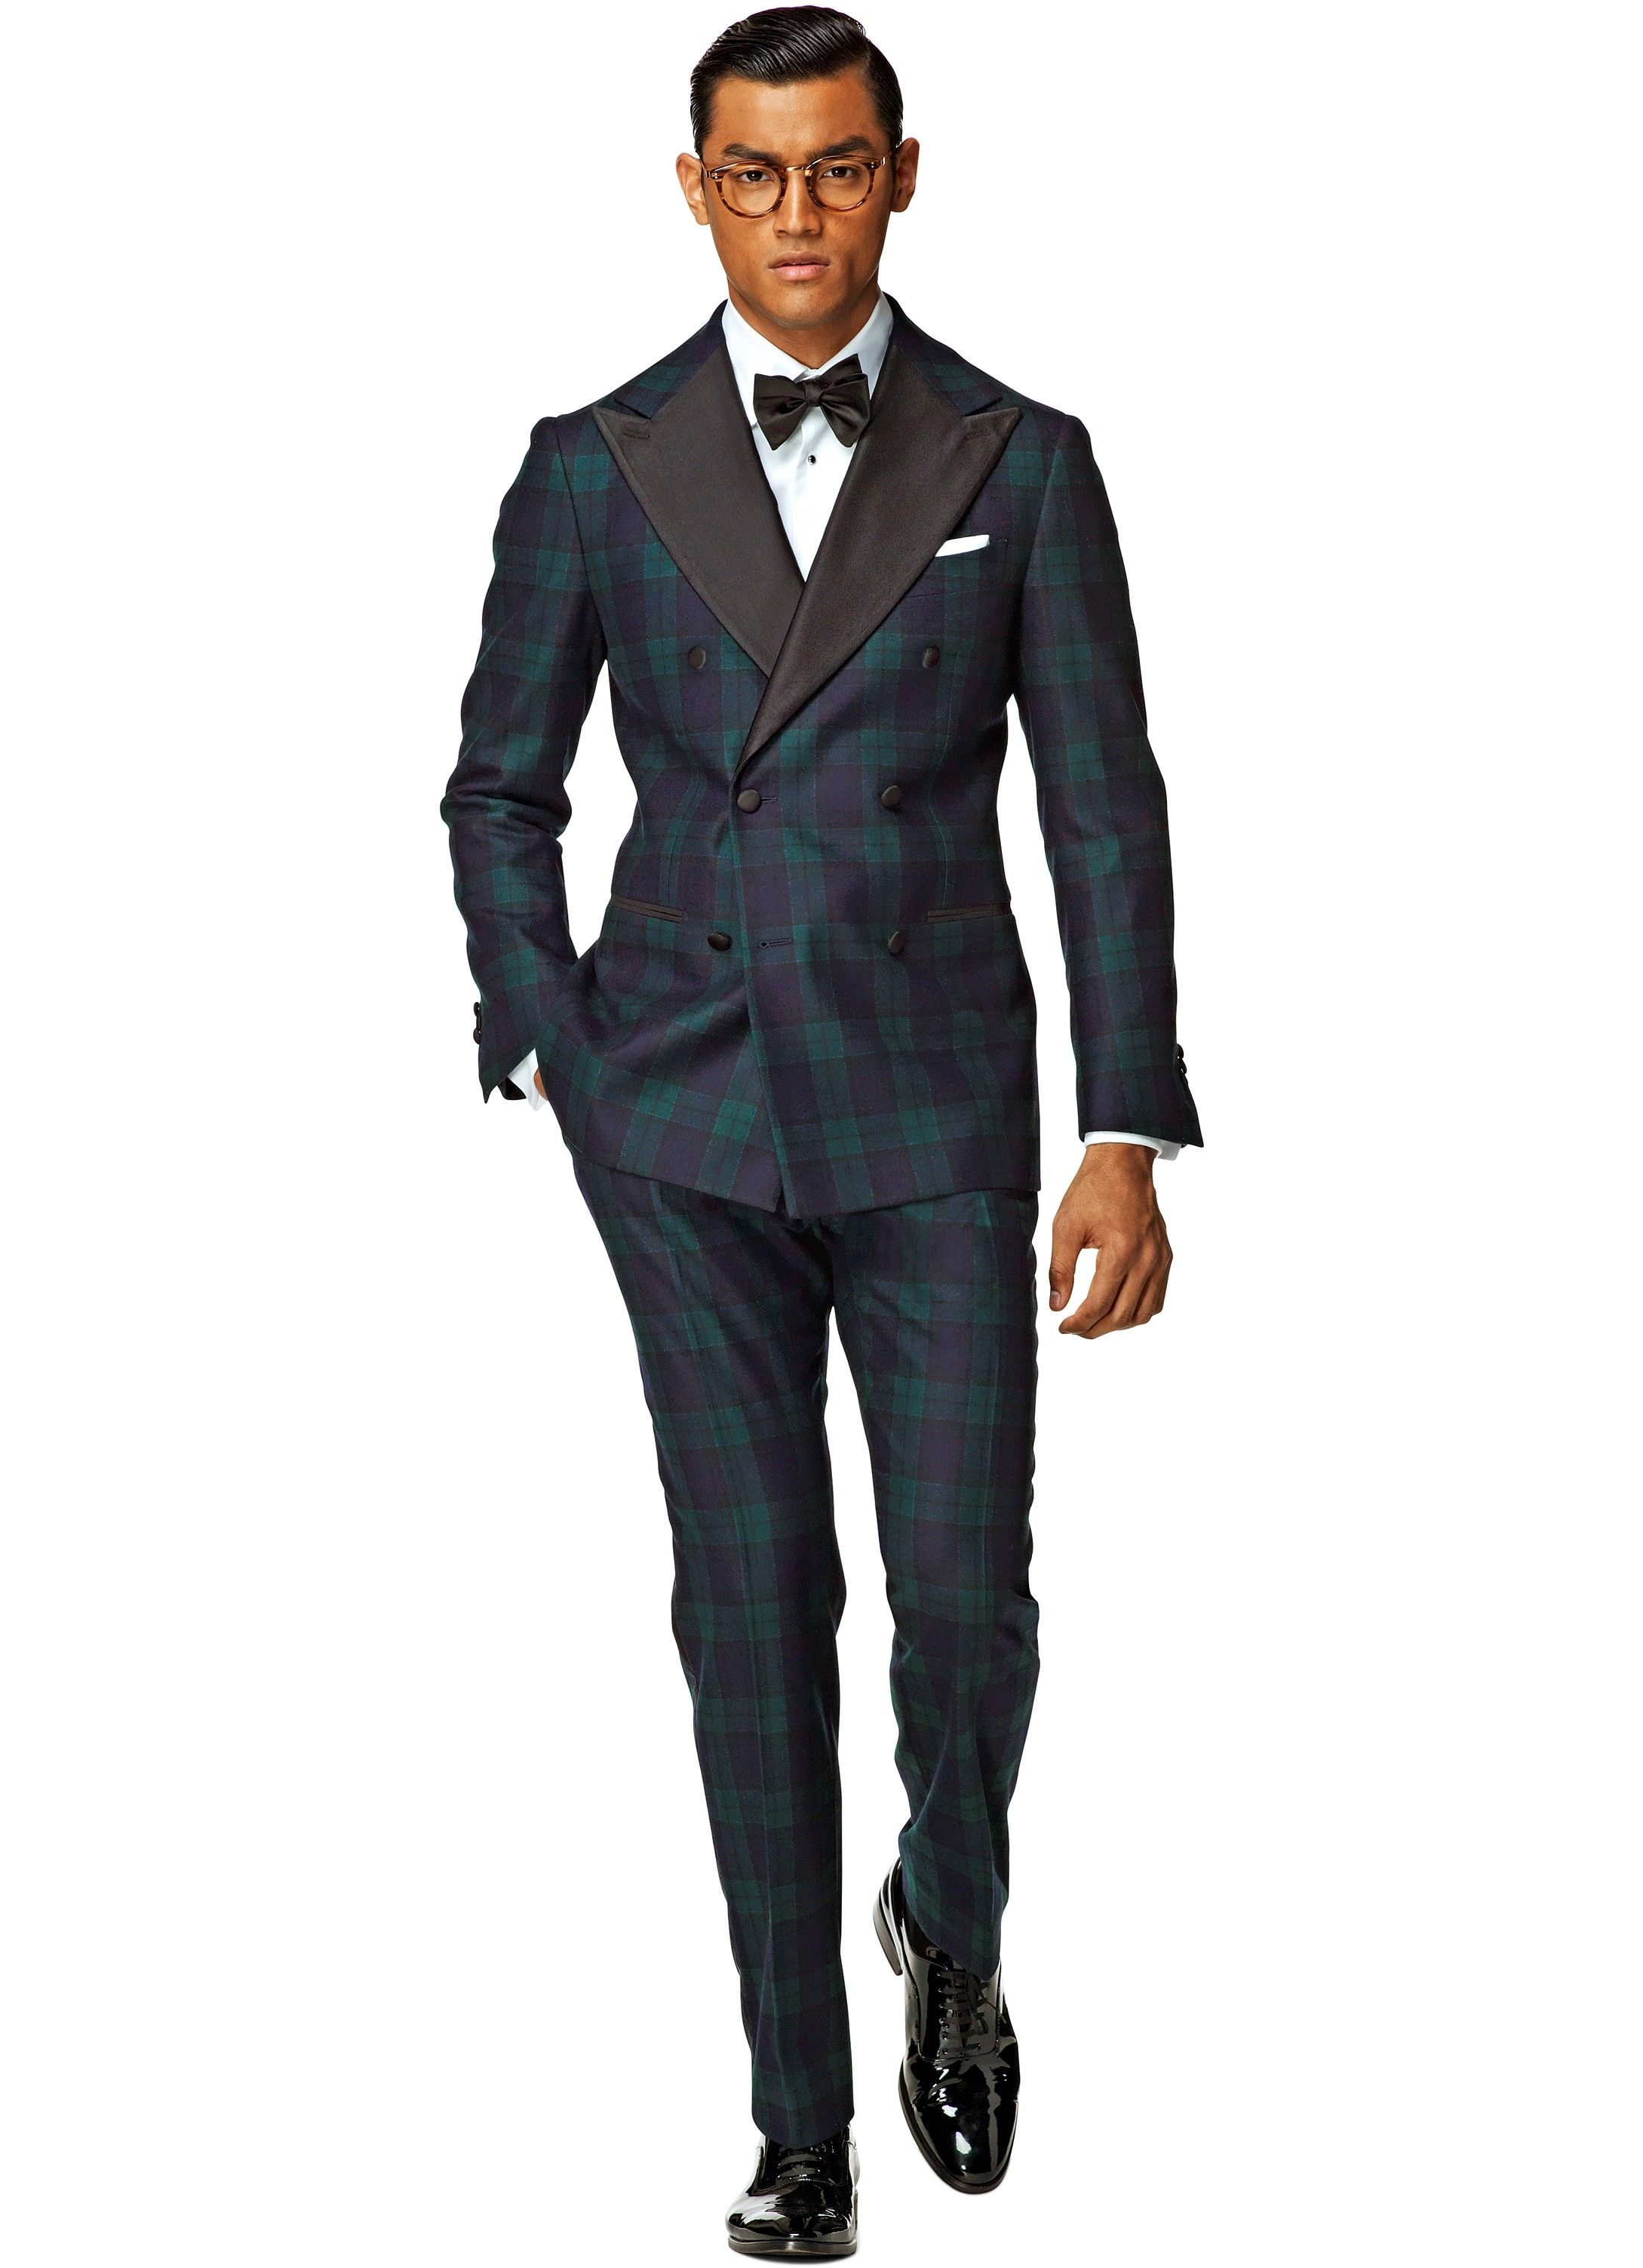 486a3b862092 Suit Blue Check Madison Smoking P3989 | Suitsupply Online Store ...